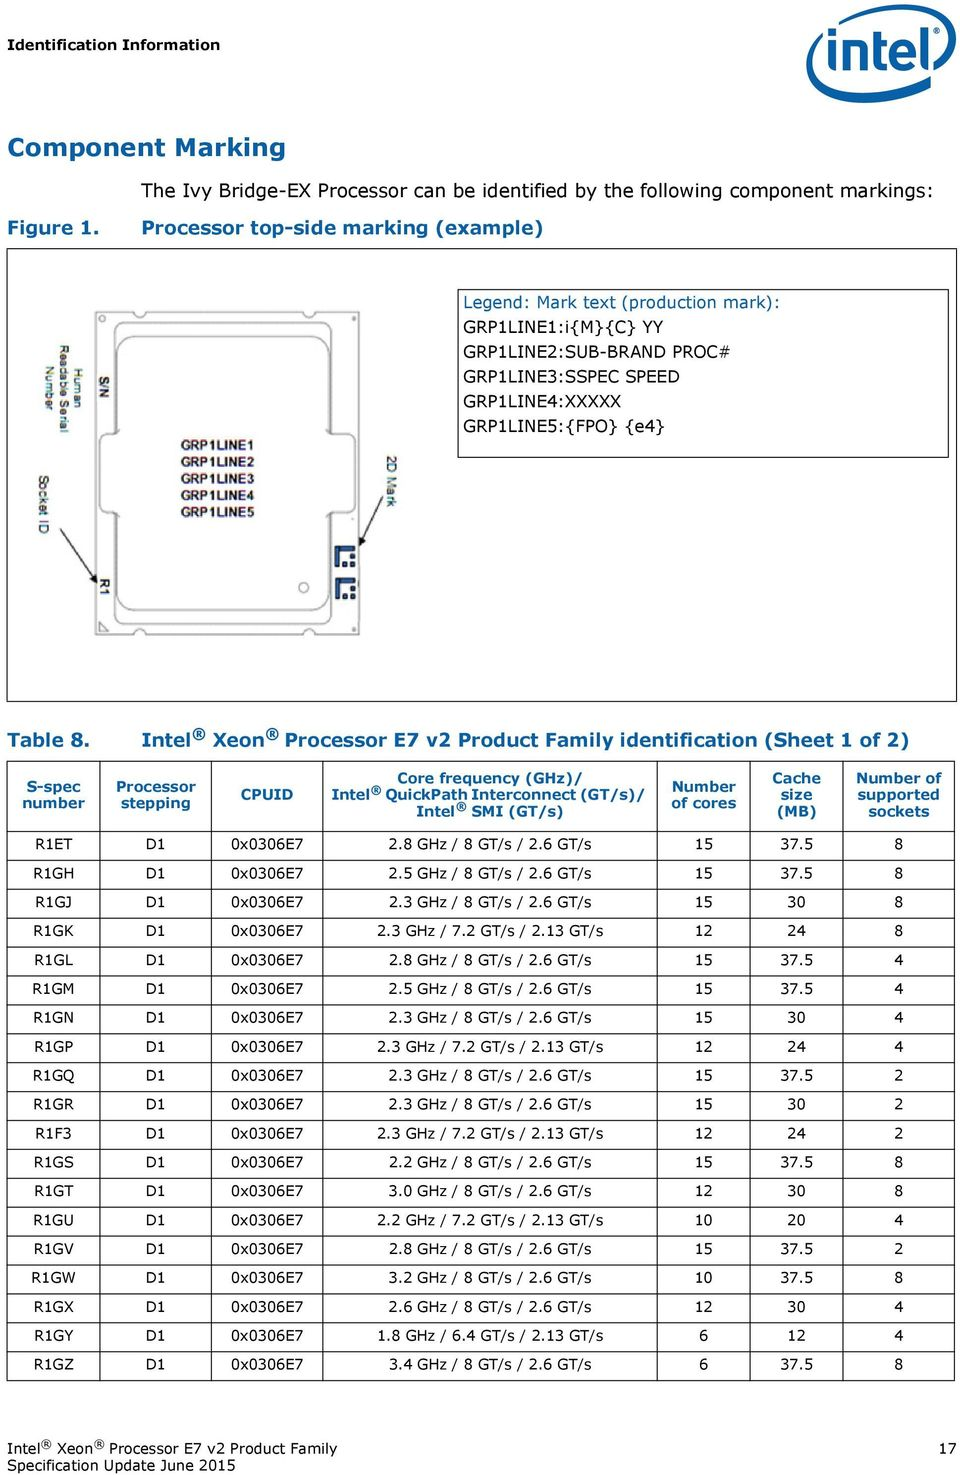 Intel Xeon Processor E7 v2 Product Family identification (Sheet 1 of 2) S-spec number Processor stepping CPUID Core frequency (GHz)/ Intel QuickPath Interconnect (GT/s)/ Intel SMI (GT/s) Number of